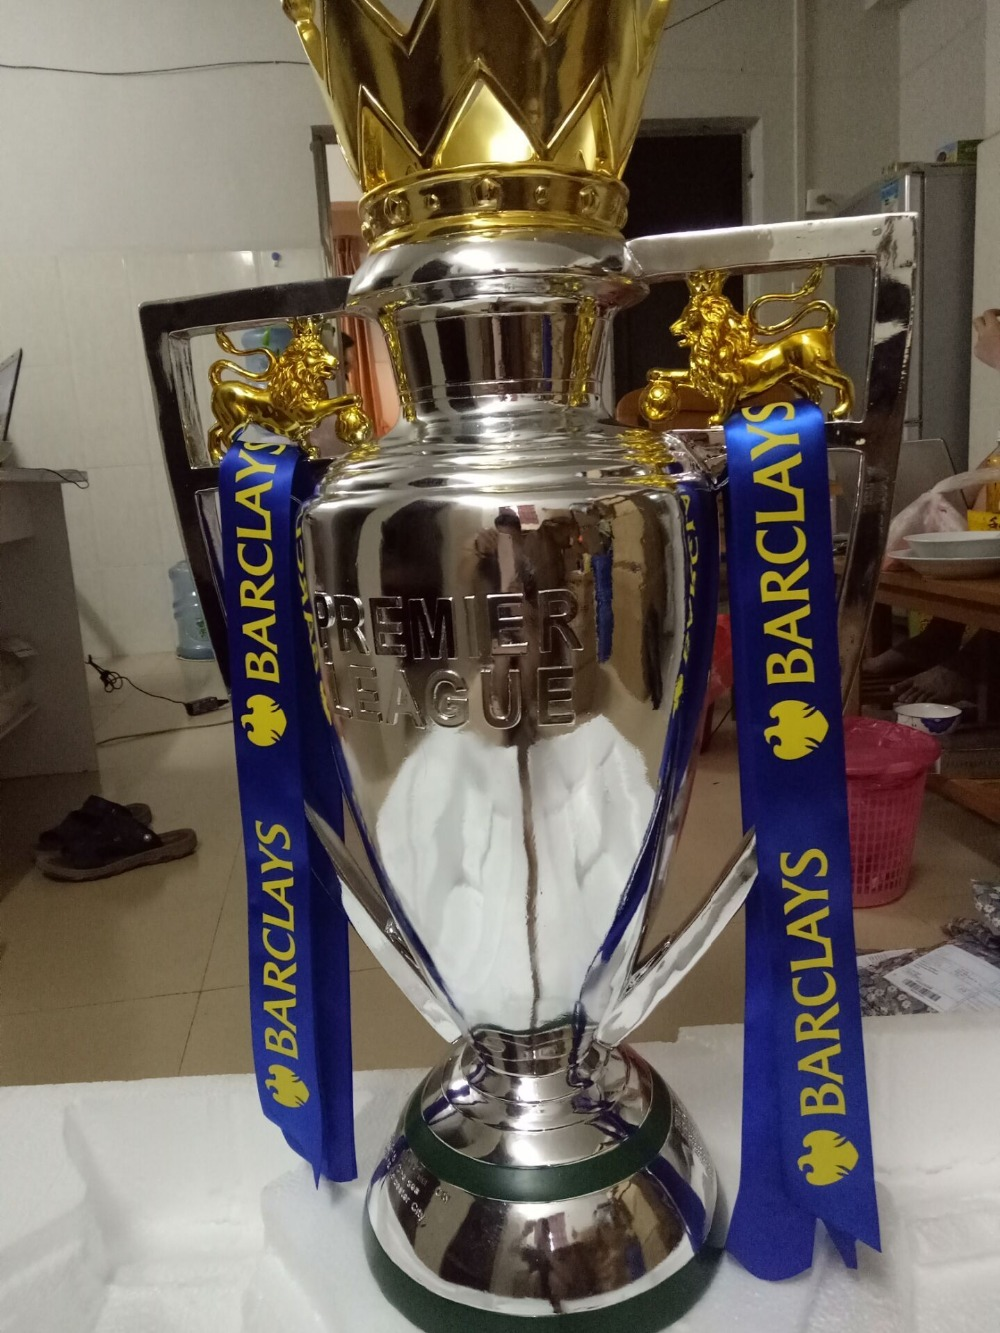 king size 77 cm Resin English fa Premiership trophy premier league trophy Football Fans Souvenirs Premier League charles perrault kuldjuustega kaunitar